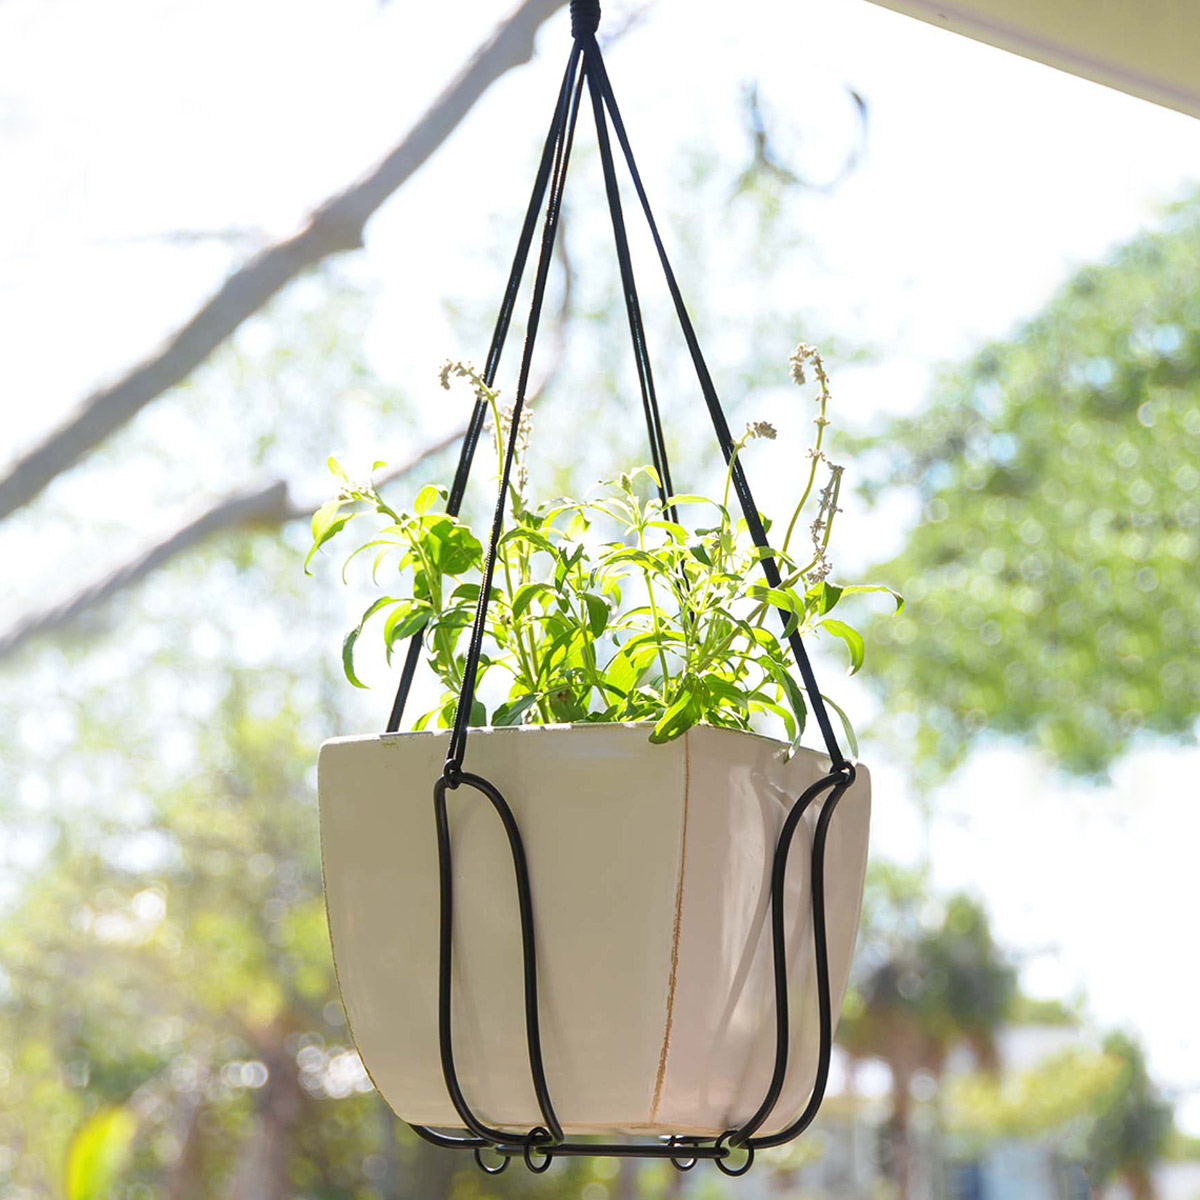 Adjustable plant hanger turns almost any pot into a for Decorative hanging pots